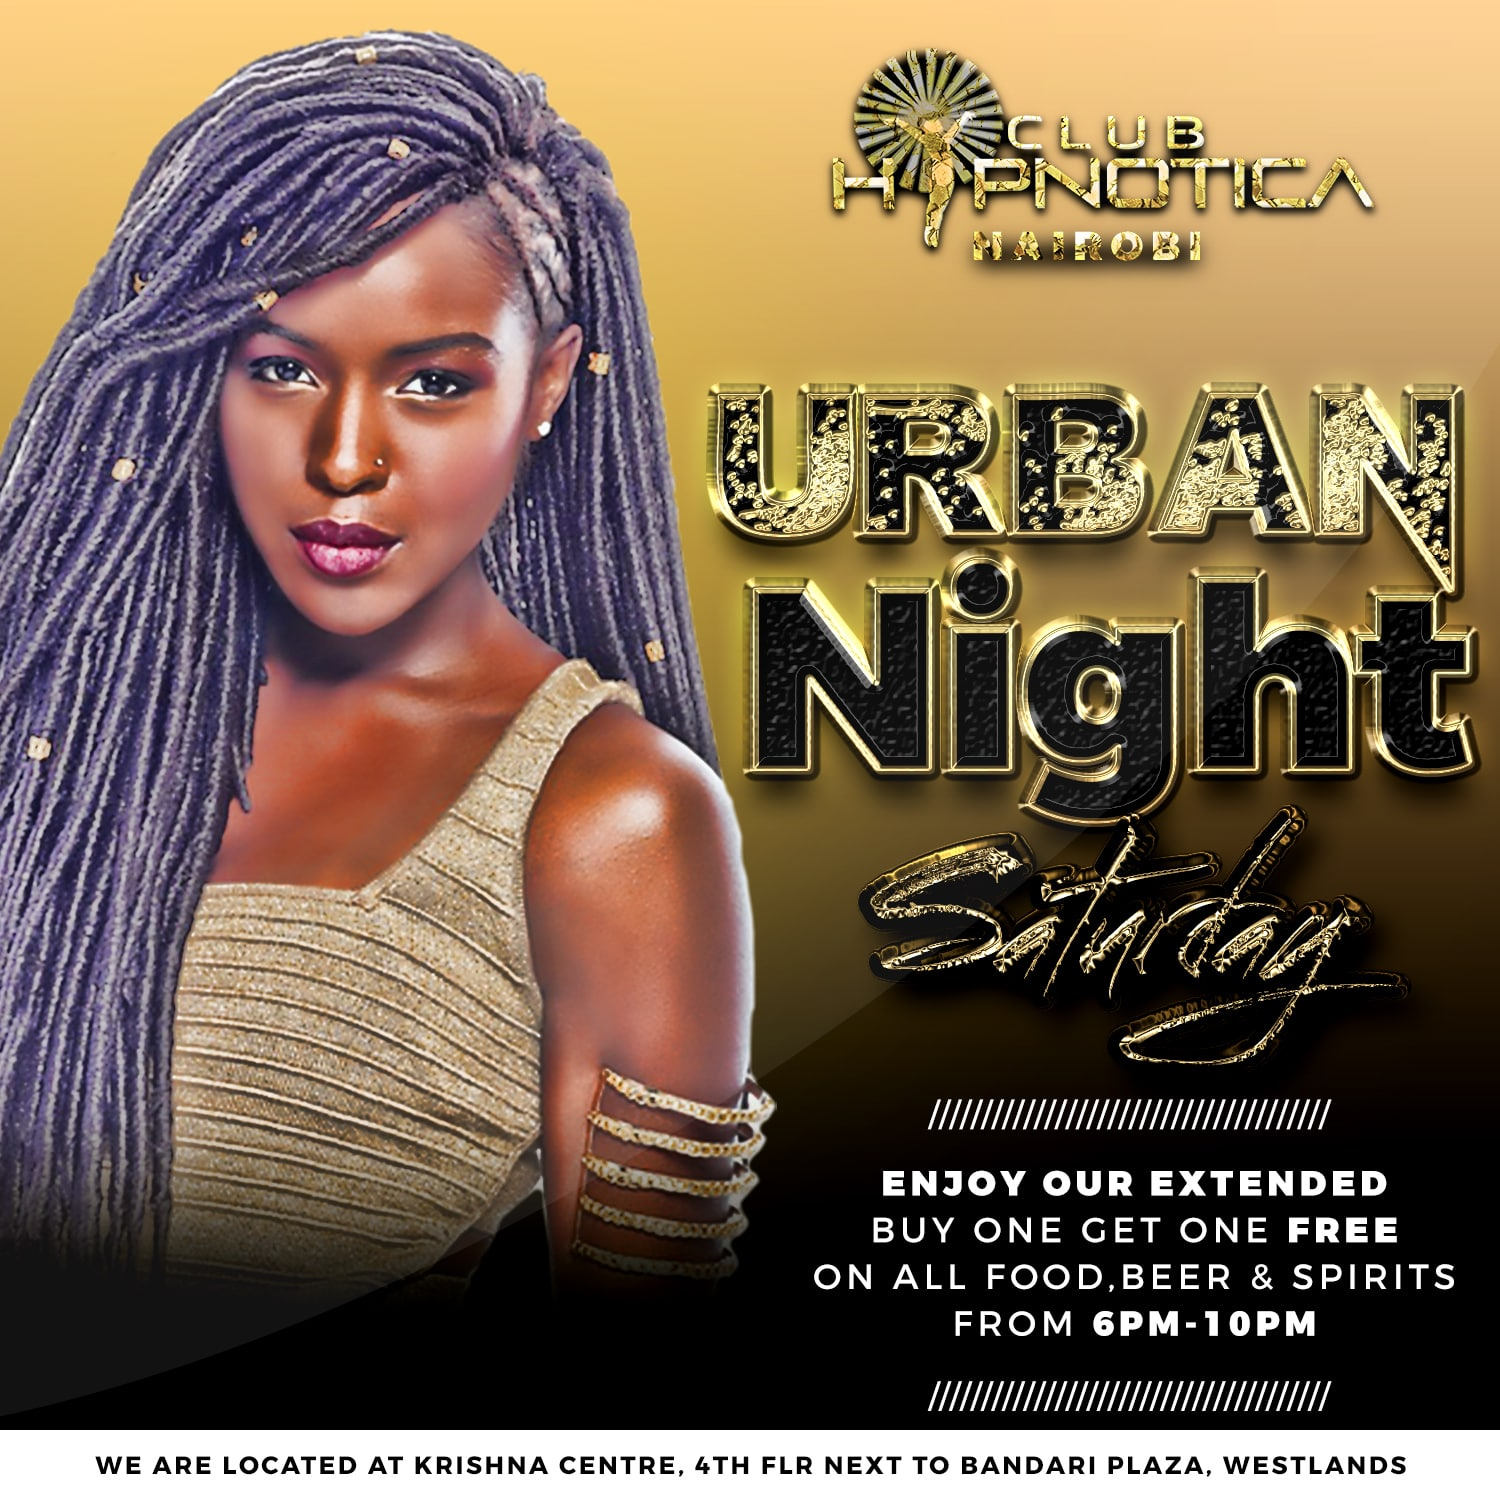 urban-night-saturday-16yth-june-min